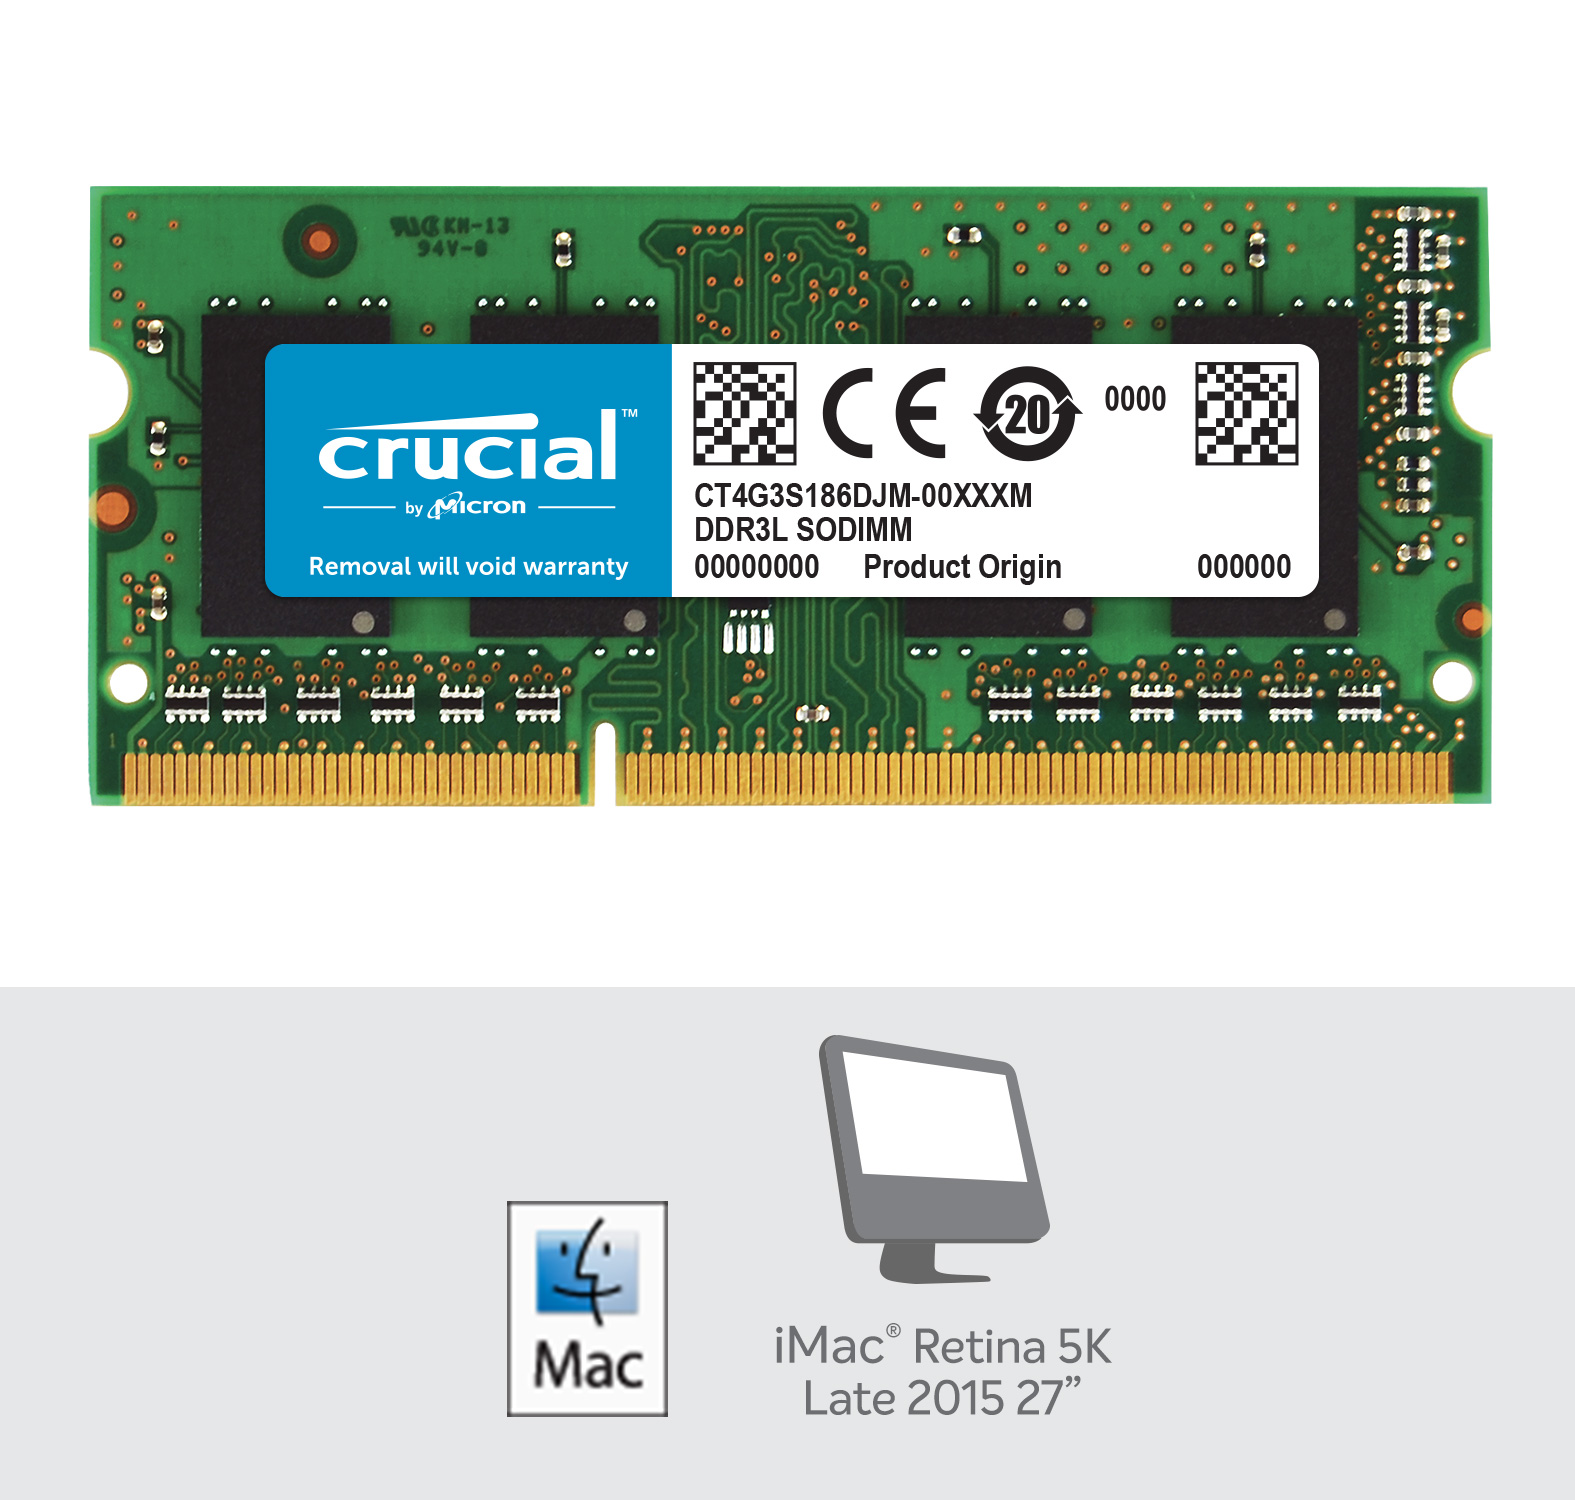 Crucial 4GB DDR3L-1866 SODIMM Memory for Mac- view 2